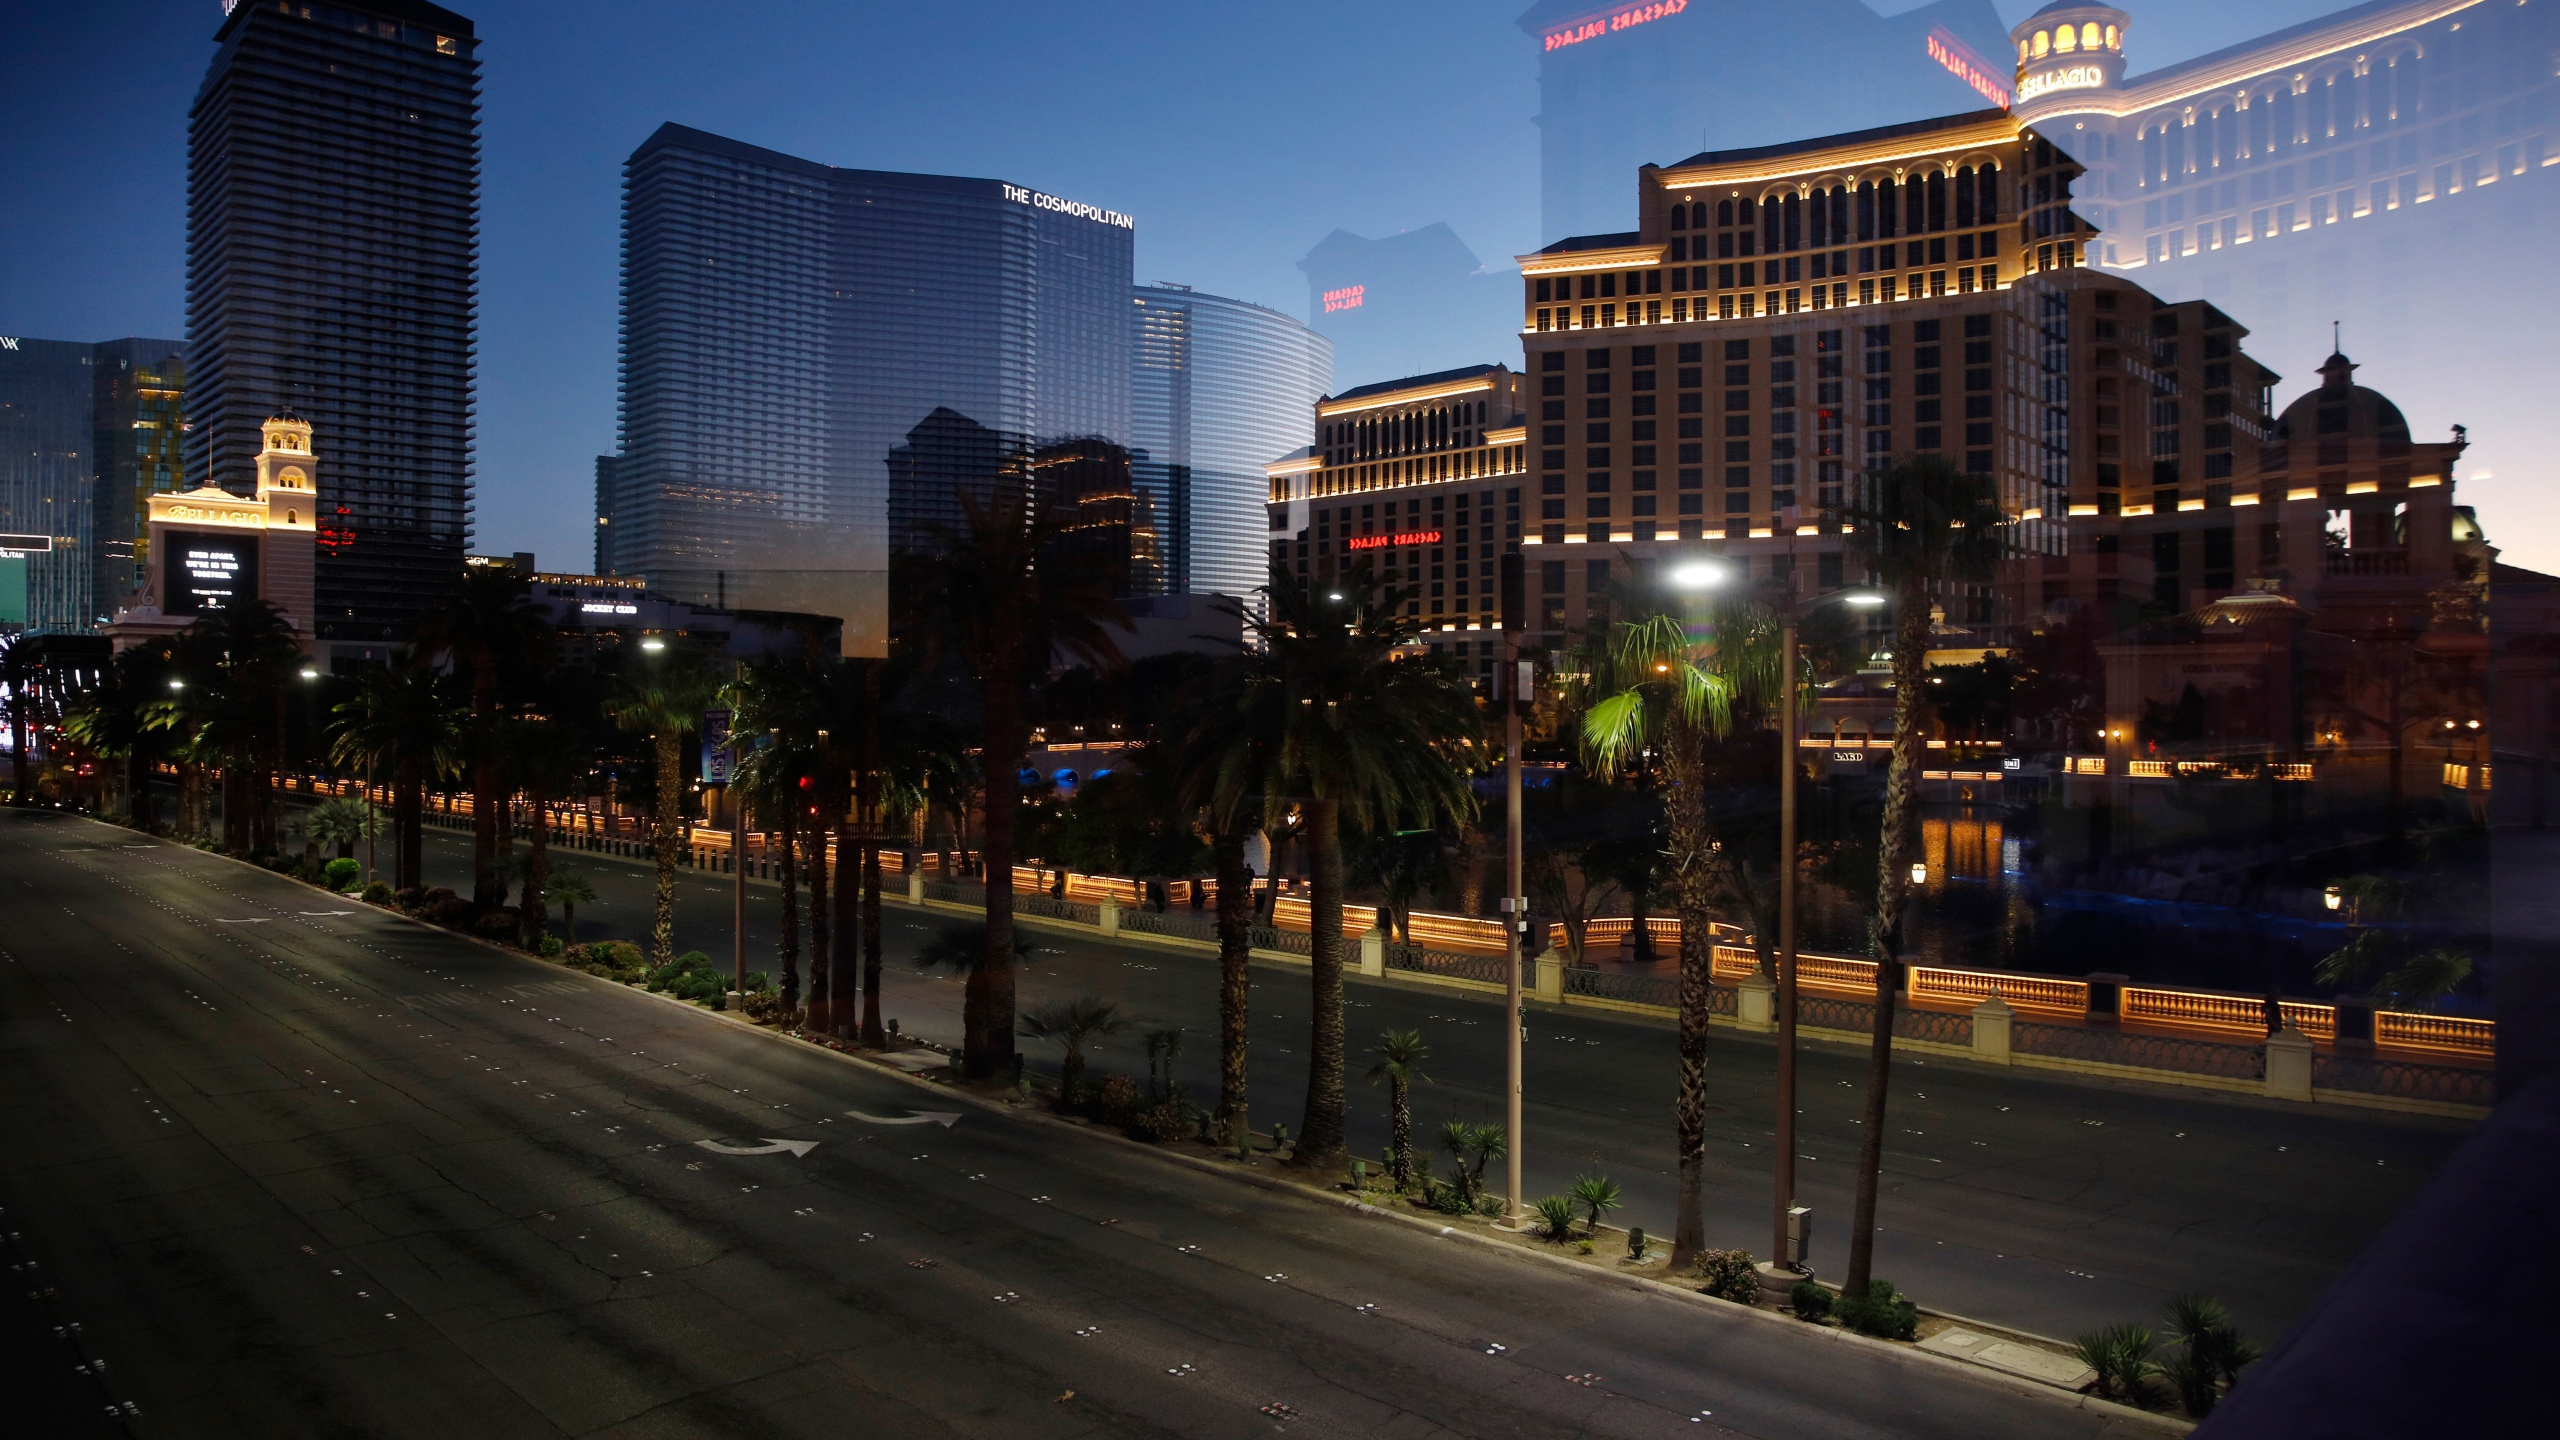 Las vegas casinos detail reopening dates and safety plans